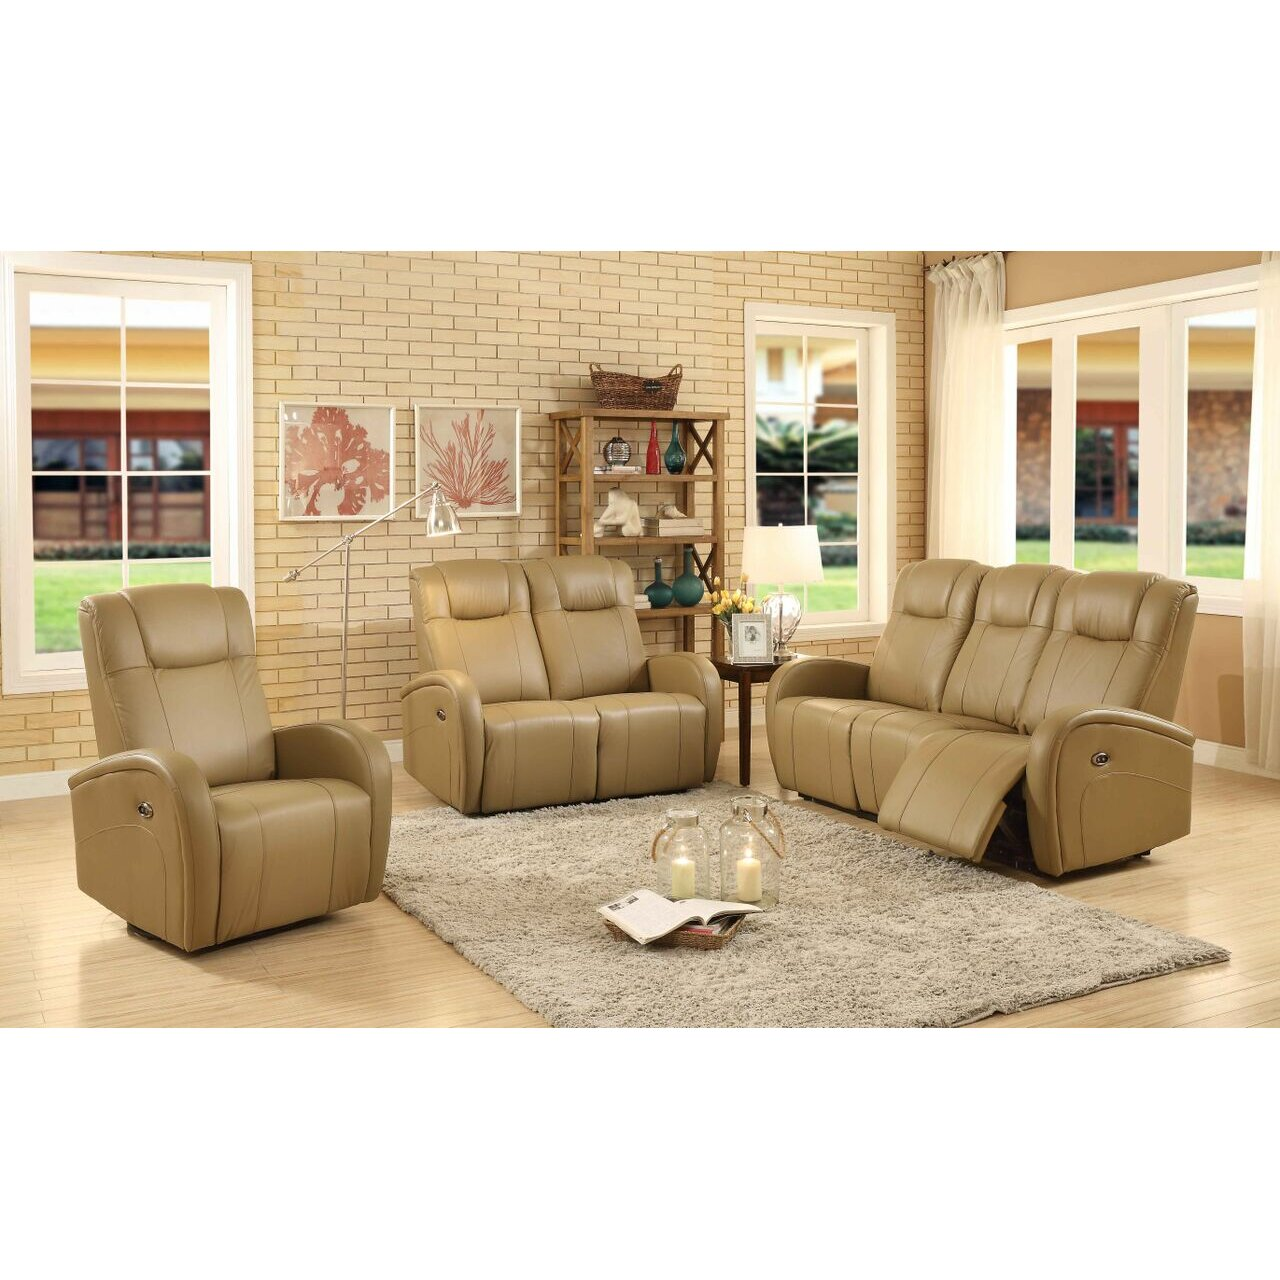 easy living swiss 3 piece power reclining living room set by sunset